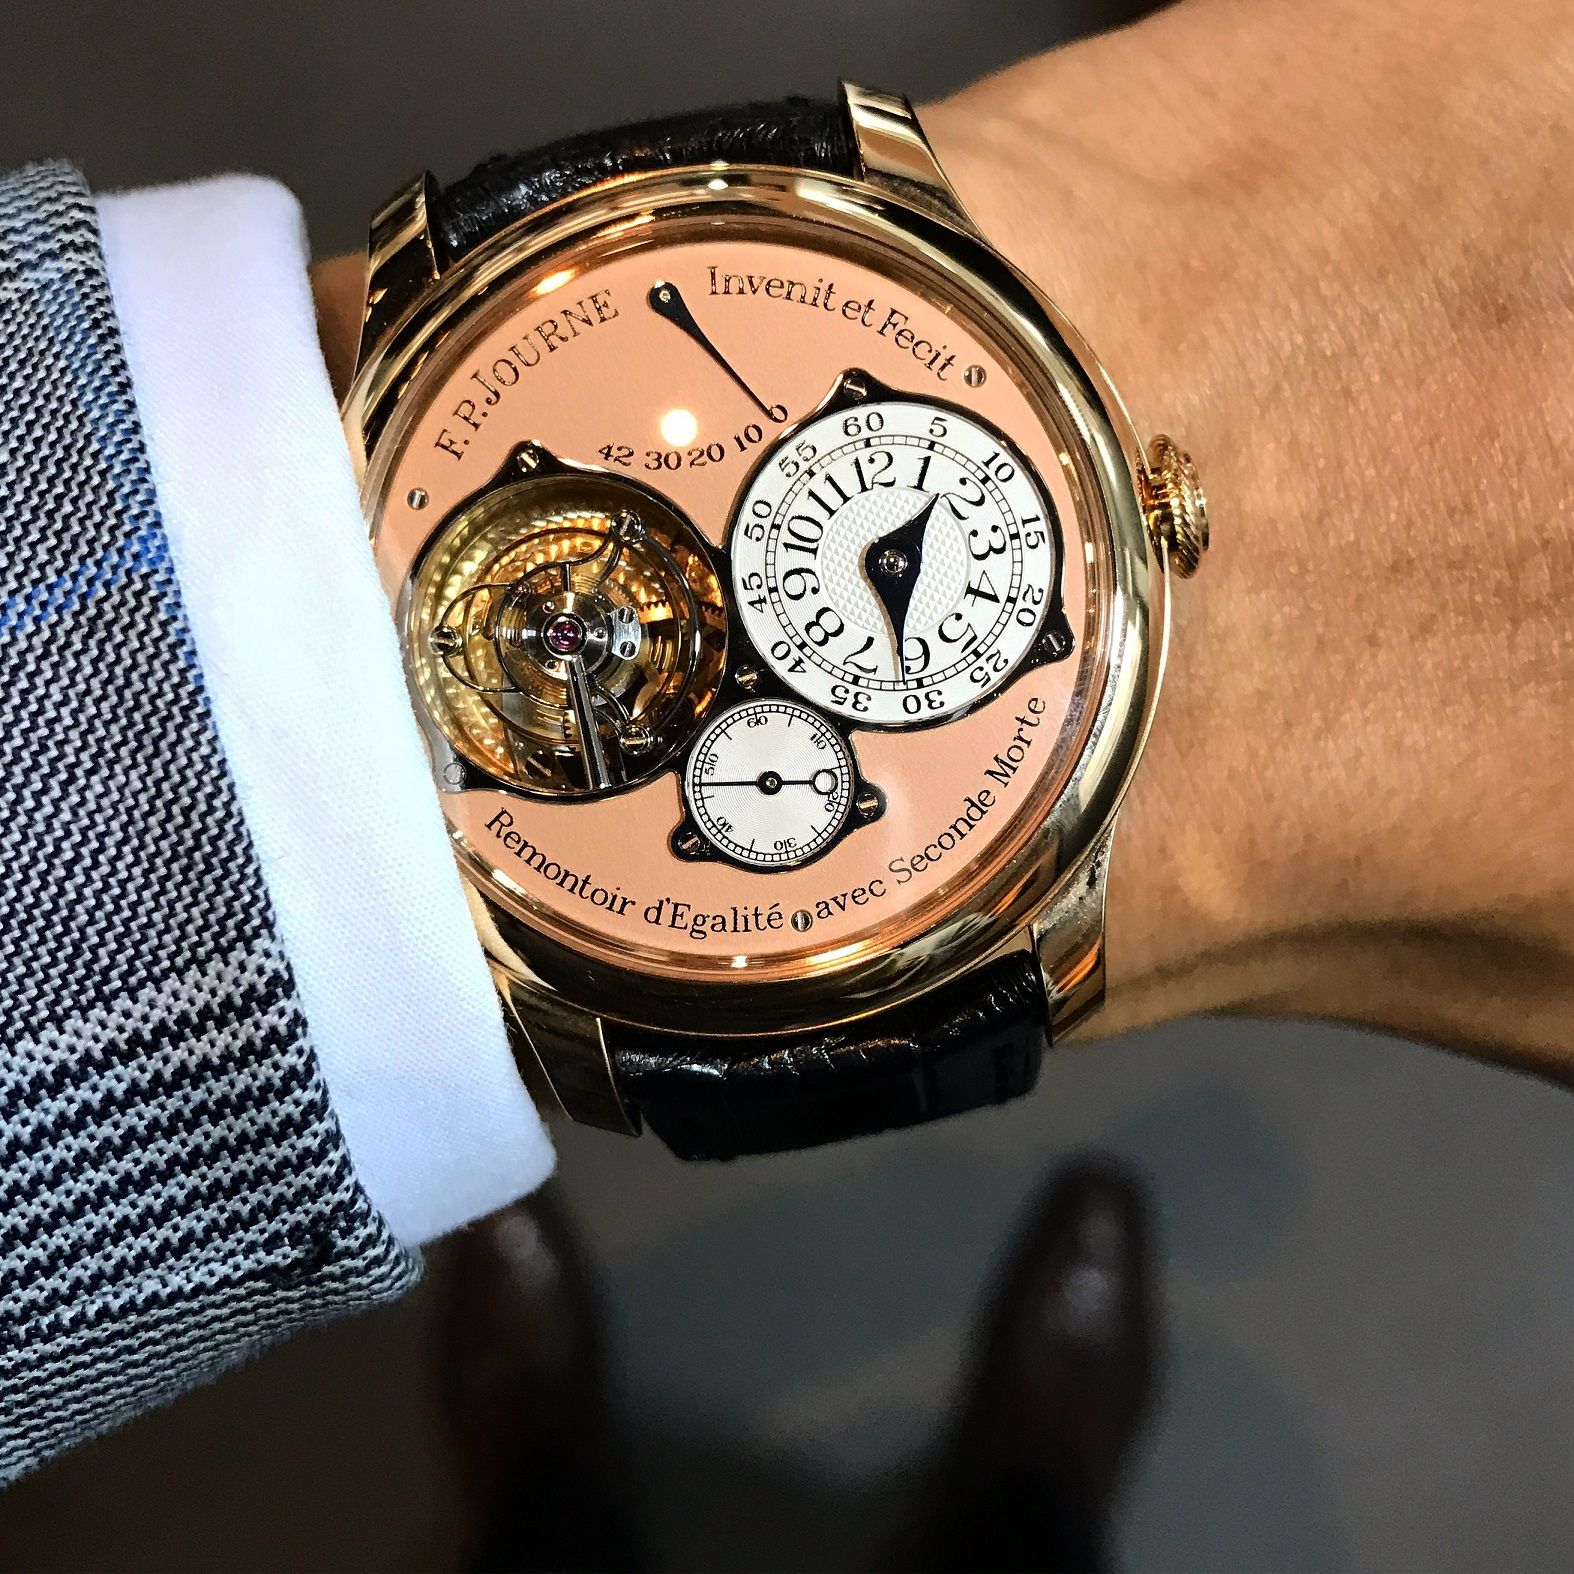 F.P. Journe - Tourbillon Souveraine. Photo courtesy of Wee Yong (@Horolojizz).